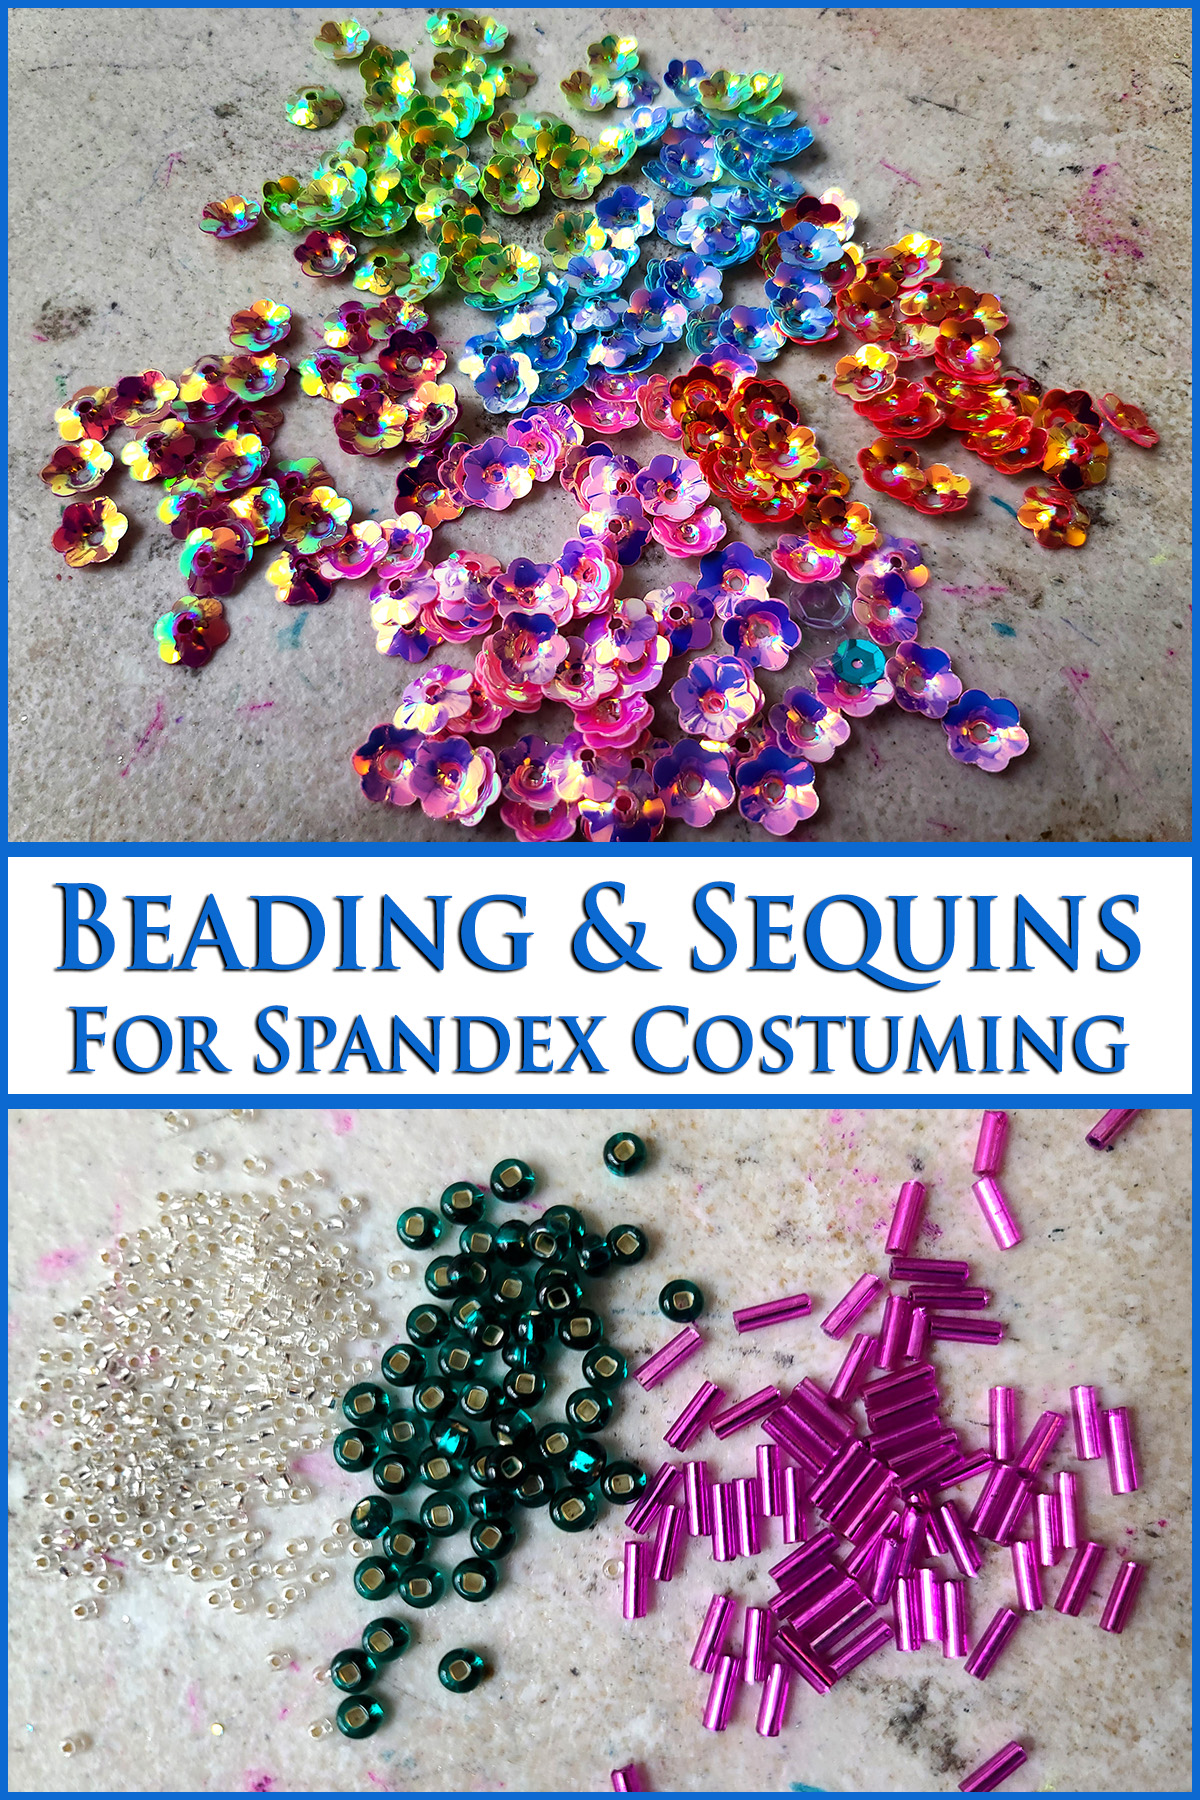 A 3 part compilation image showing a pile of iridsecent sequins, a few piles of multicoloured beads, and green text that says Beading and Sequins for Spandex Costuming.